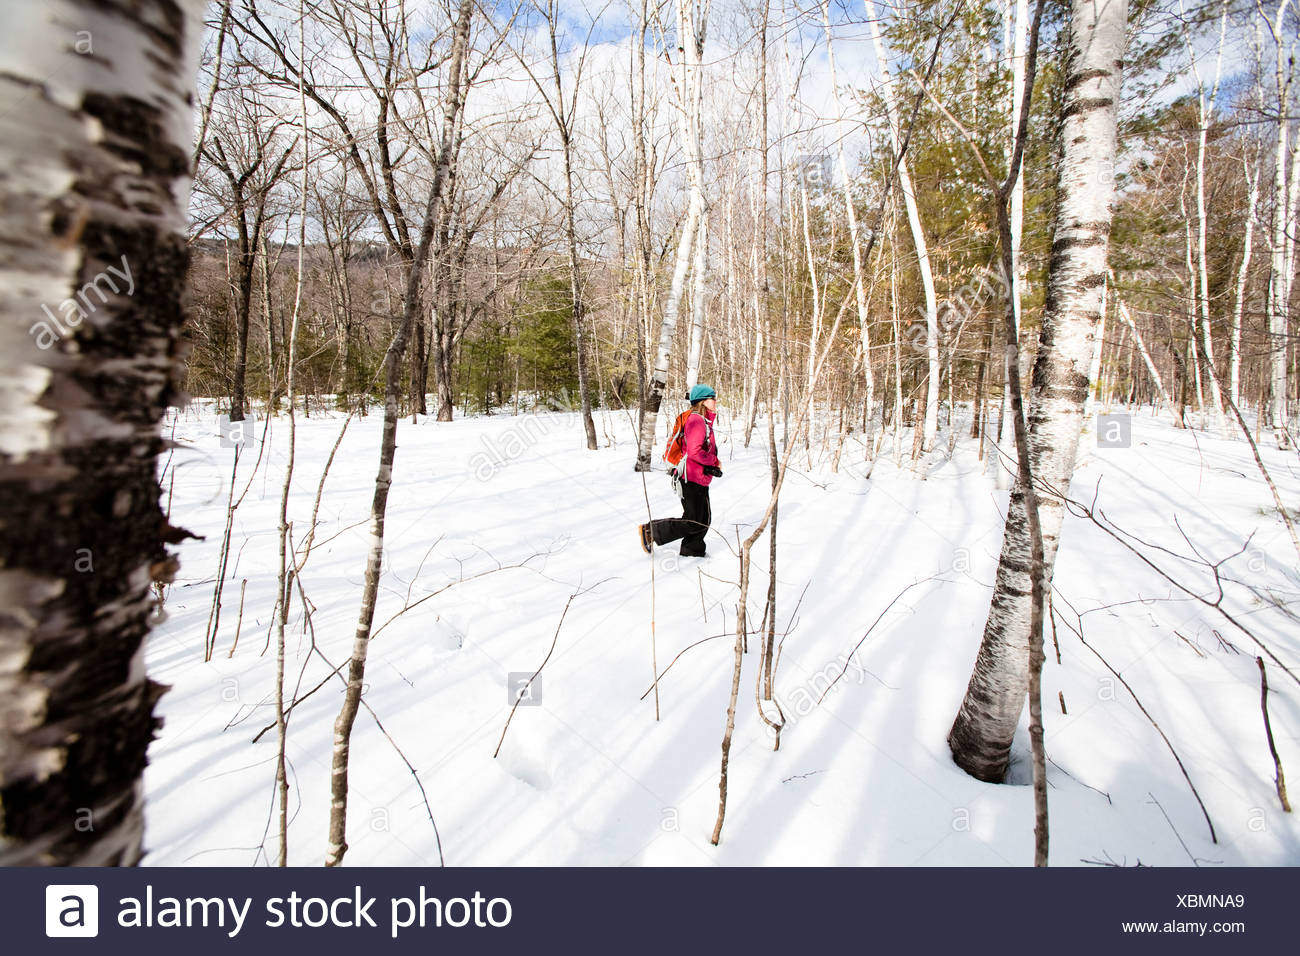 A woman snowshoes on a trail off the Kangamangus Highway near Conway, New Hampshire. - Stock Image